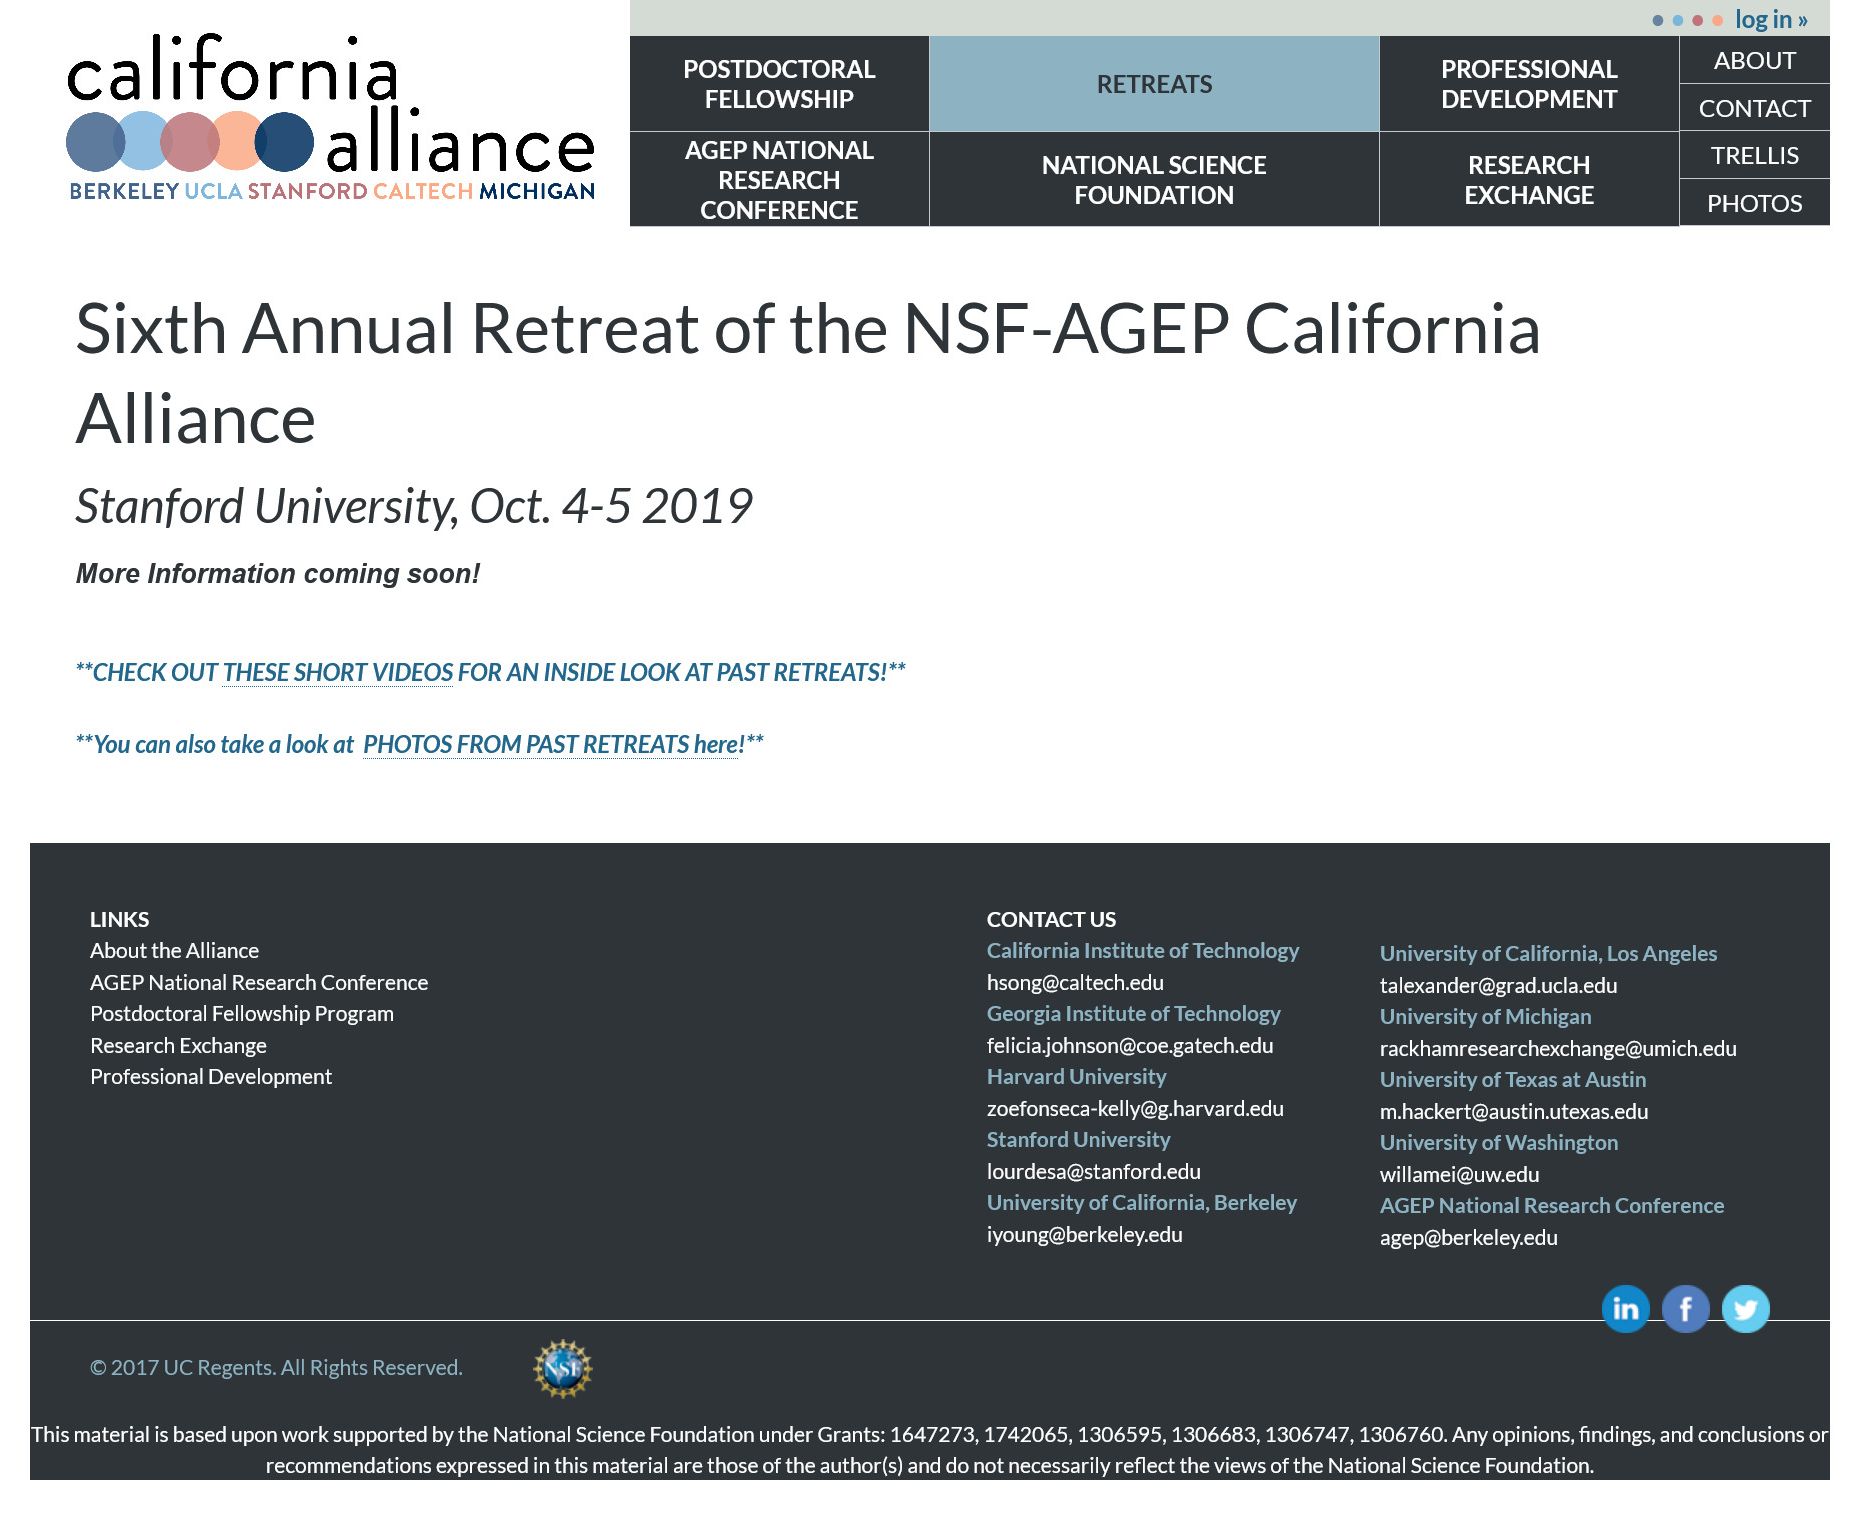 Image is a screen capture of California Alliance.org Retreat Page for archival purposes. Image includes copy from the about page and time based announcements that are now outdated.